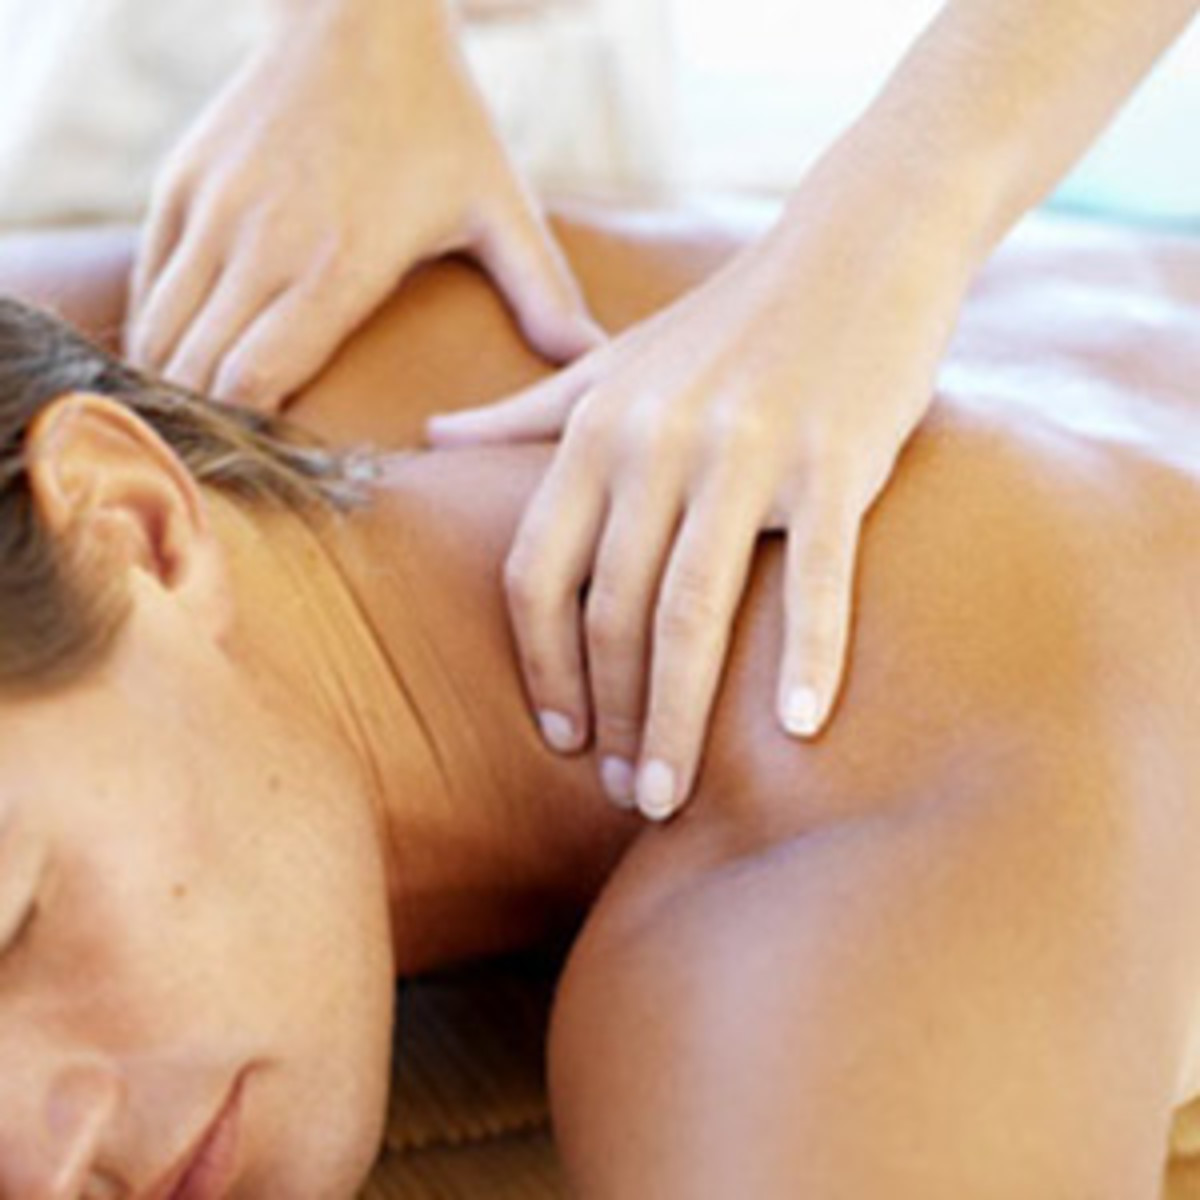 the point where the neck and back meets the spine is one of the main acupressure point for lovers